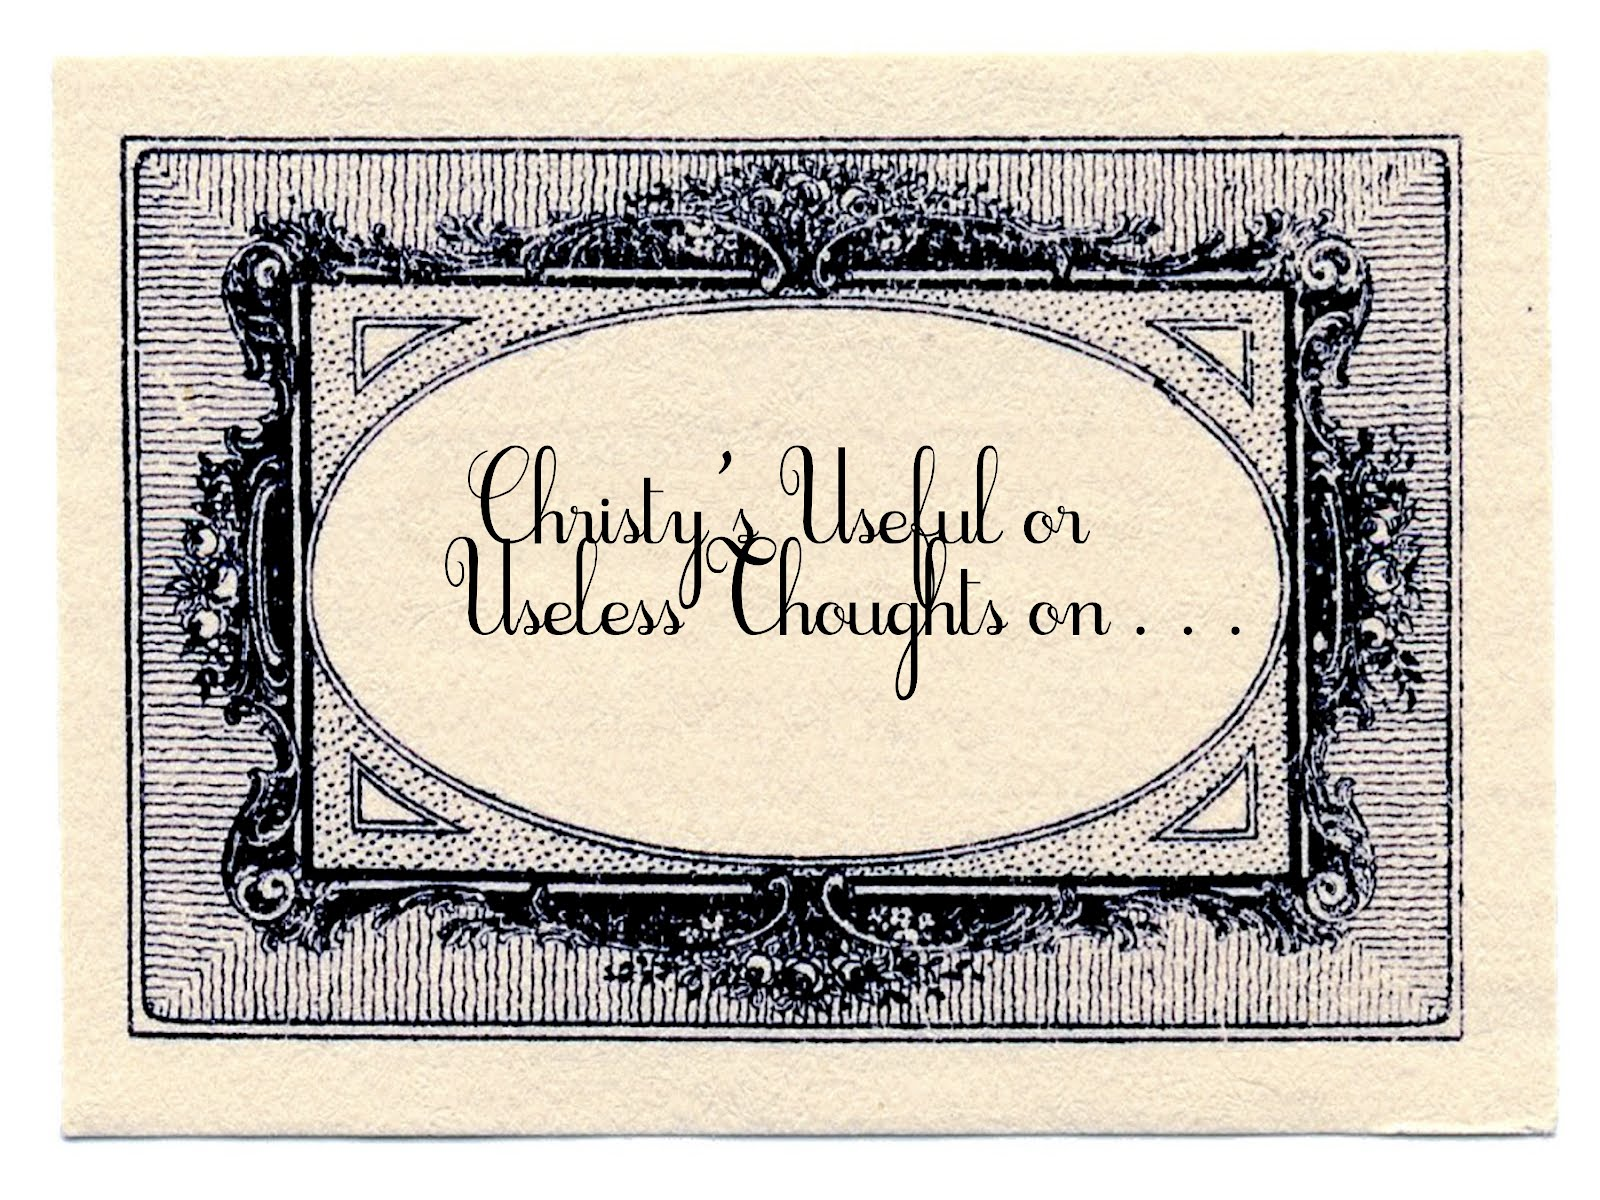 Chritsy's Useless or Useful Thoughts